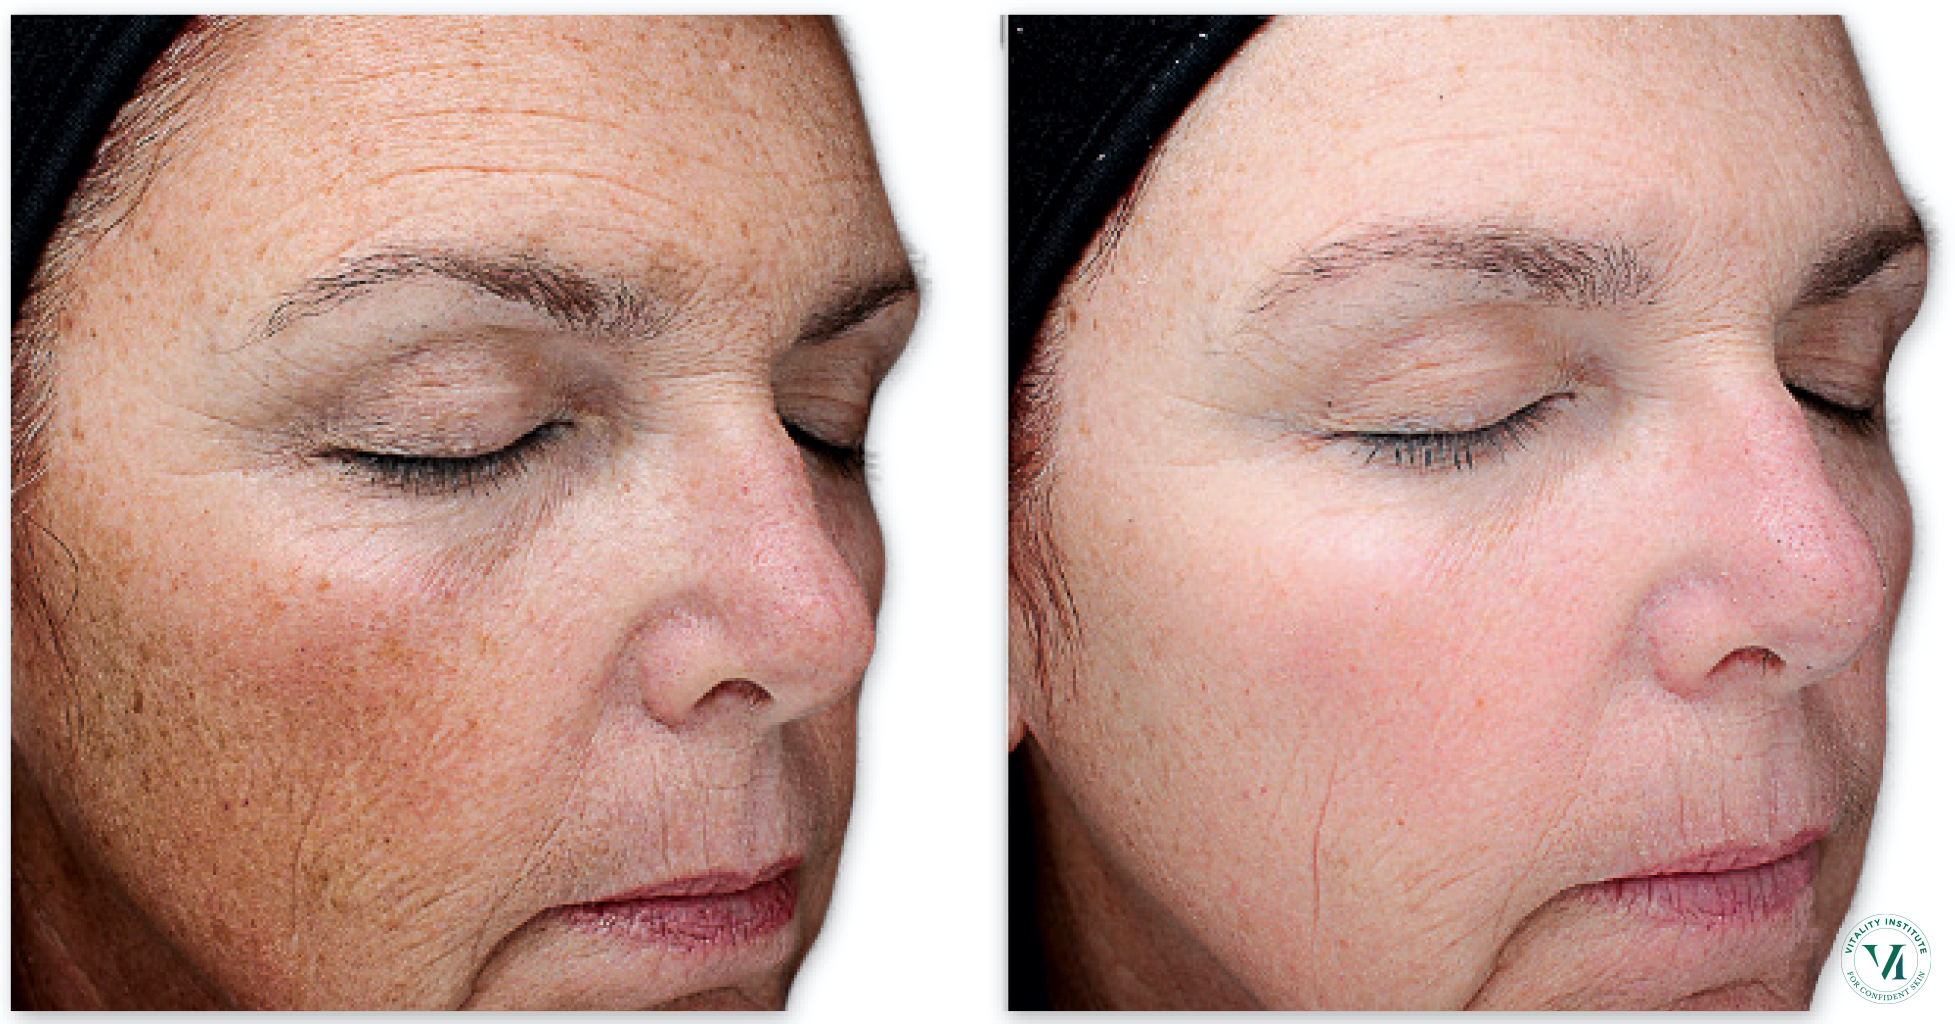 The VI Peel for brighter & smoother skin 14